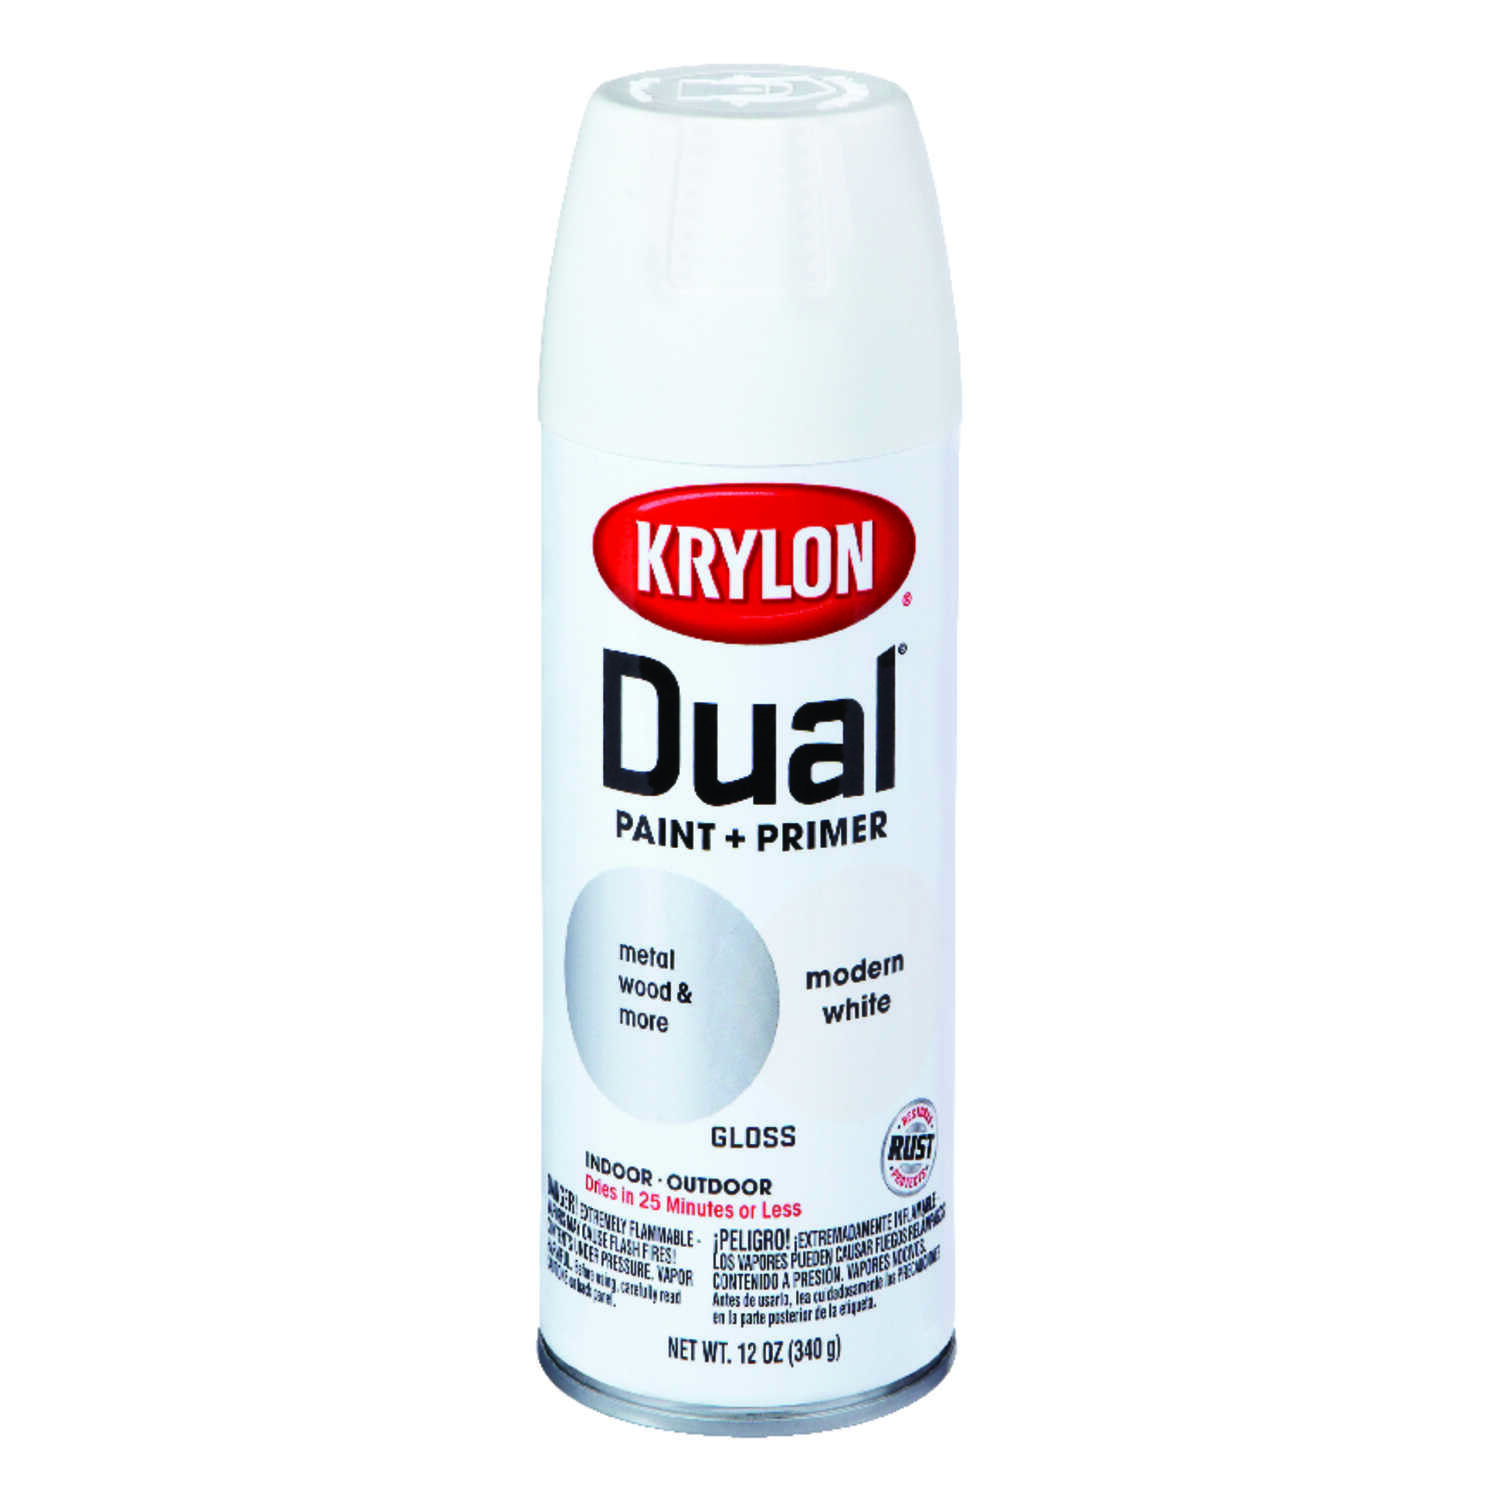 Krylon  Dual Superbond  Gloss  Paint + Primer Spray  Modern White  12 oz.